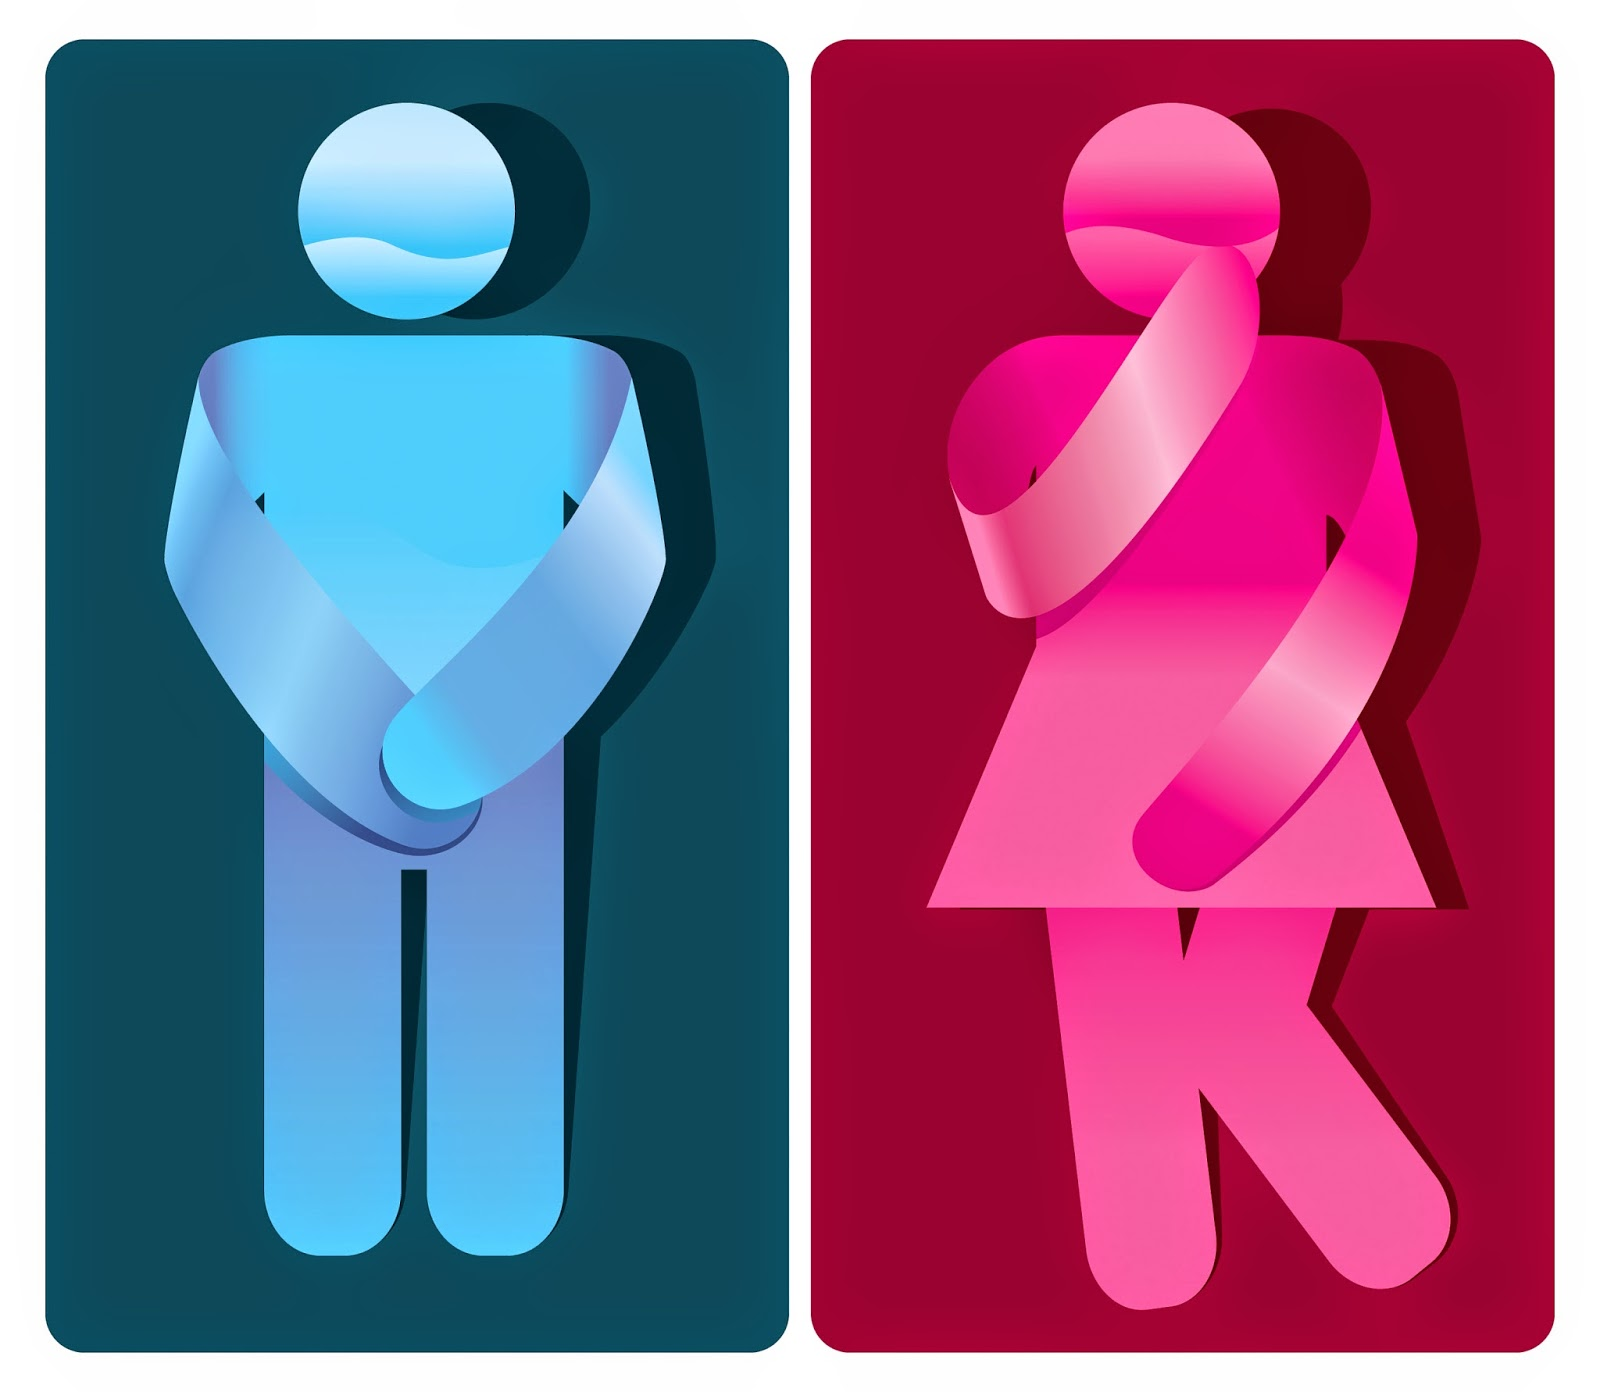 Clipart needs to go to the bathroom clipart freeuse download Linguistics Research Digest: Please excuse me while I use the ... clipart freeuse download